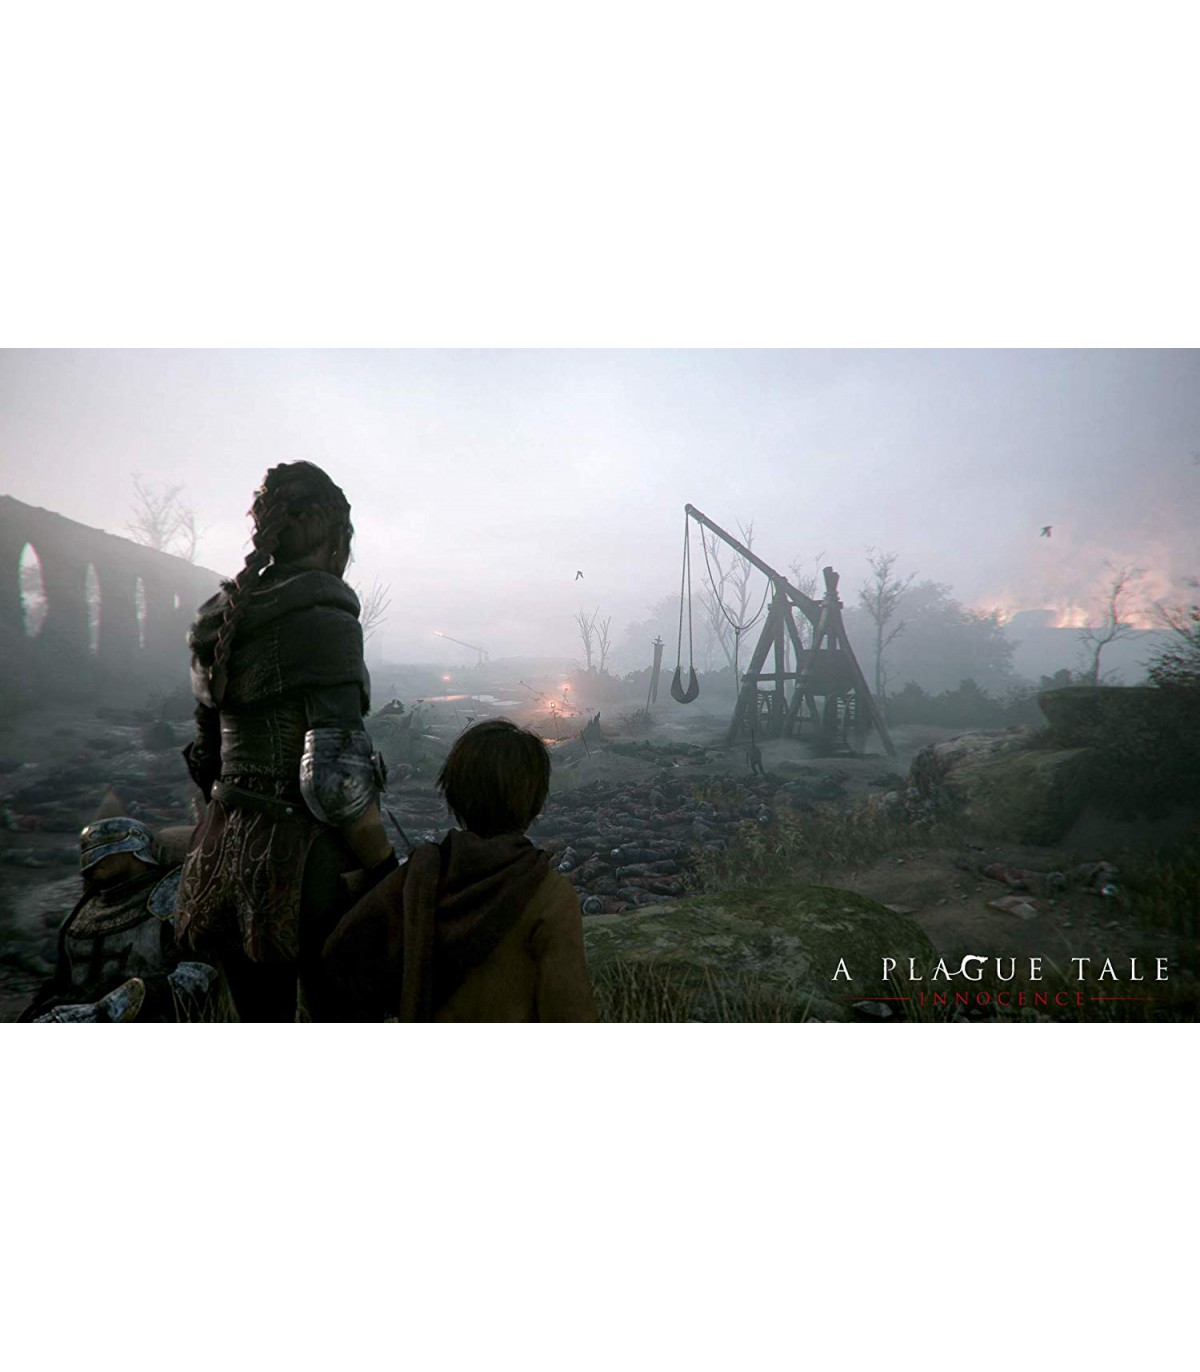 بازی A Plague Tale: Innocence - پلی استیشن 4